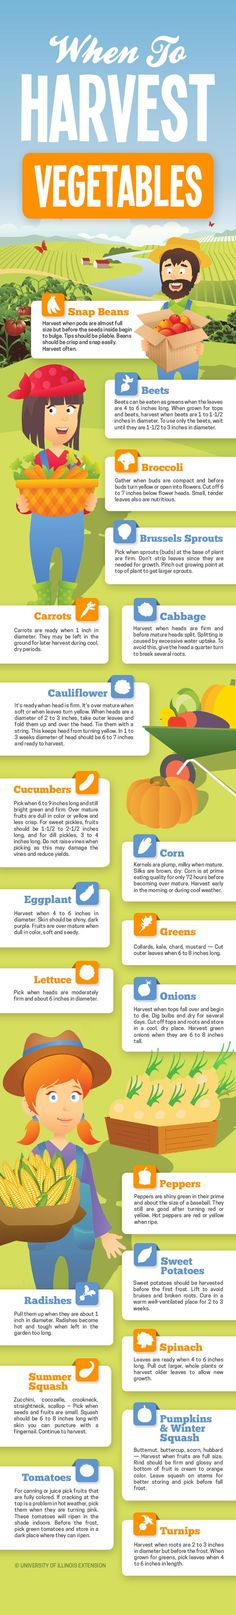 "Handy infographic for gardeners! ""When to Harvest Vegetables"" #garden #produce #veggies"